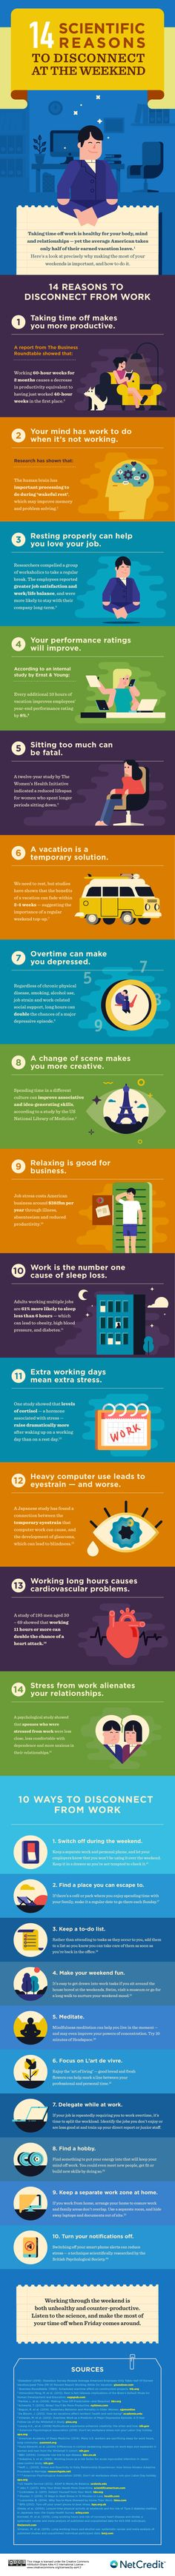 14 Scientific Reasons To Disconnect At The Weekend #Infographic #Health